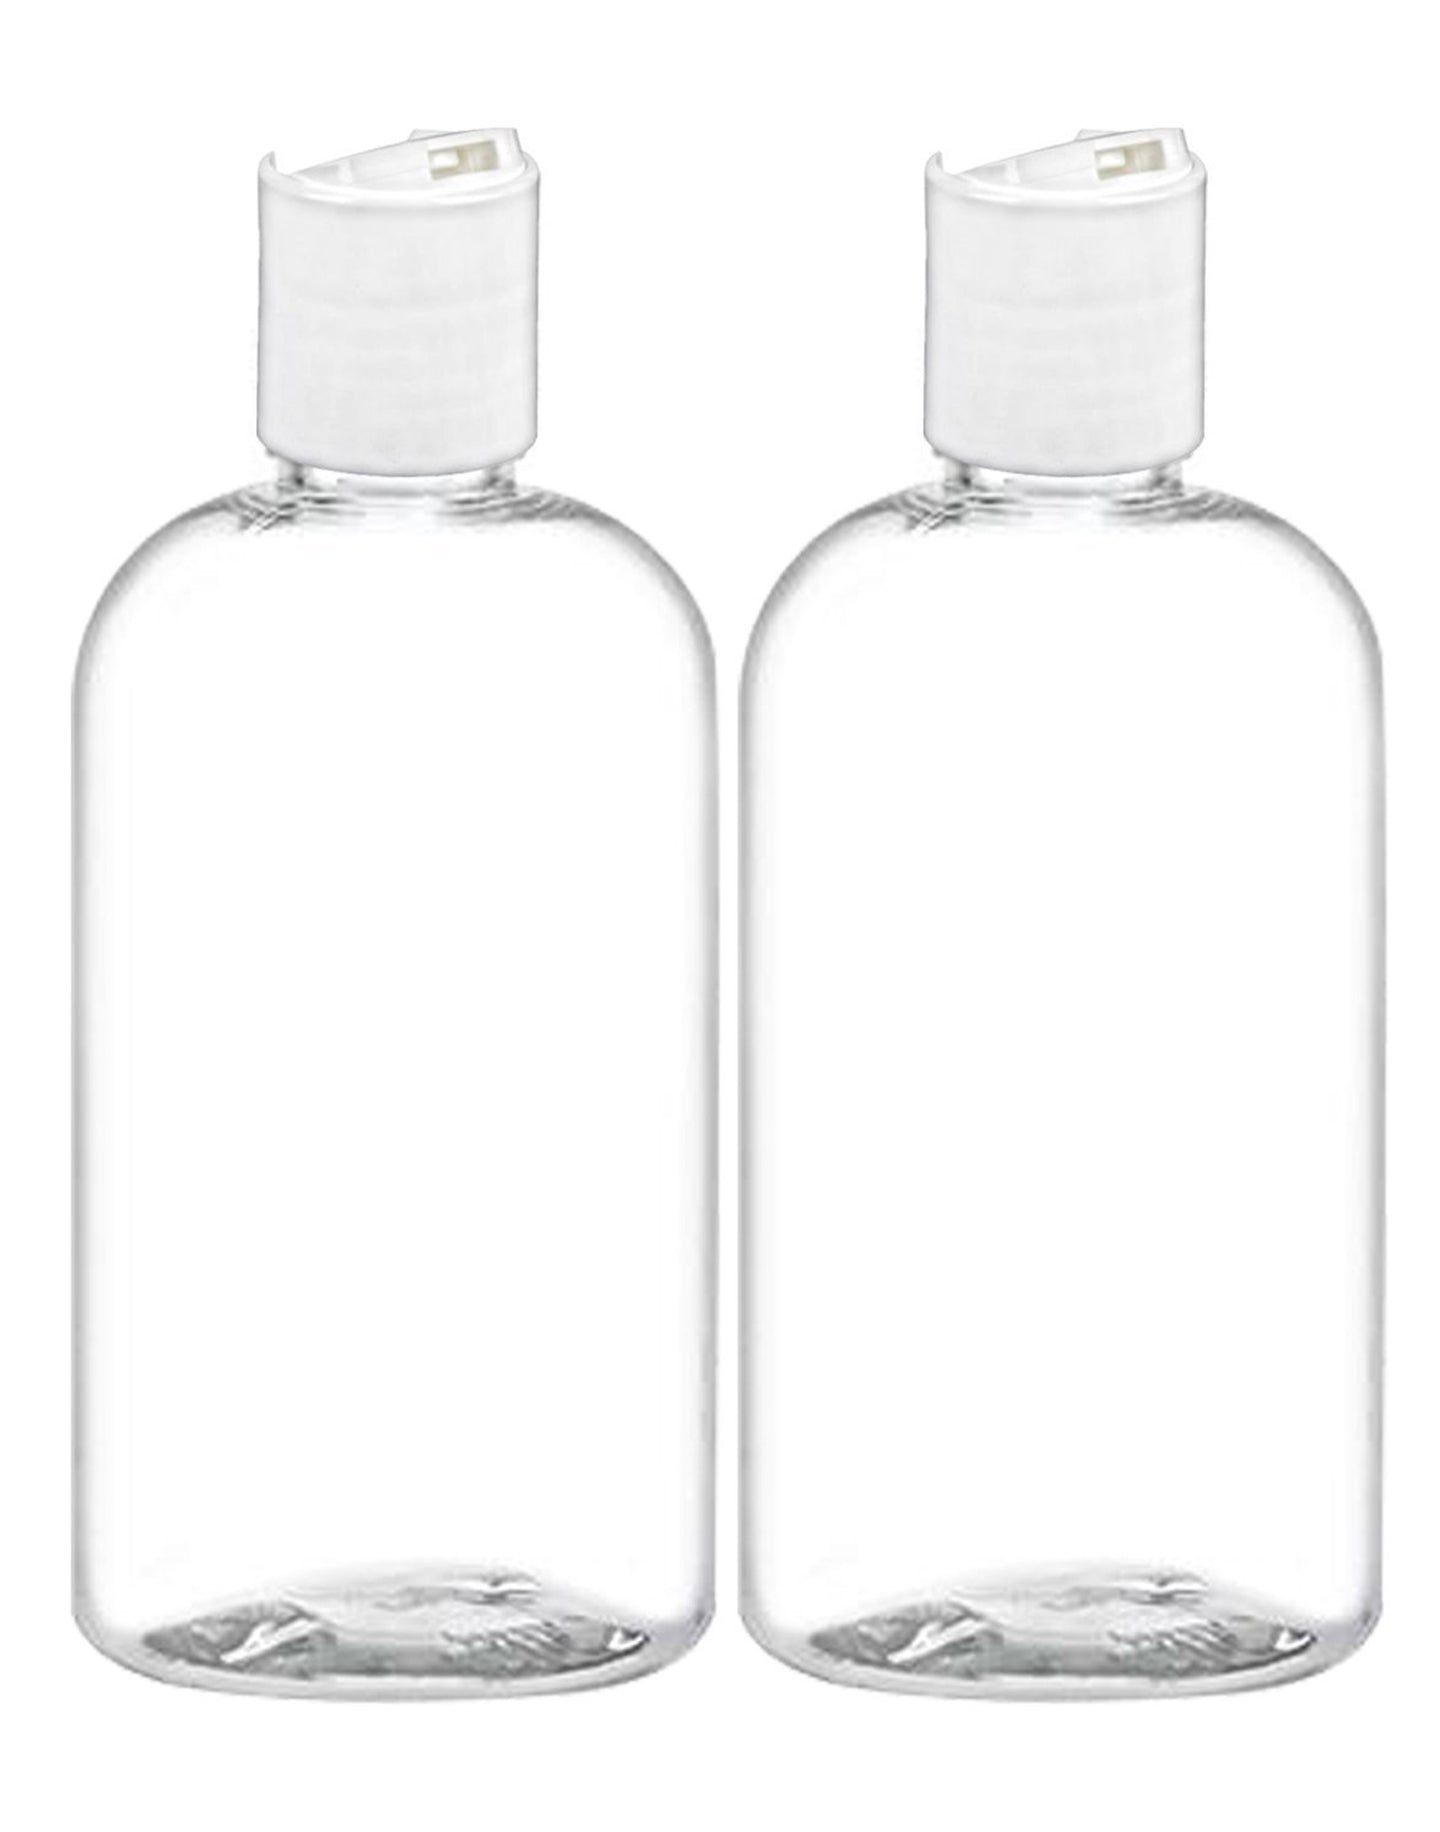 MoYo Natural Labs 8 oz Boston Travel Bottles, Empty Travel Containers with Disc Caps, BPA Free PET Plastic Refillable Toiletry/Cosmetic Bottle (Pack of 2, Clear)